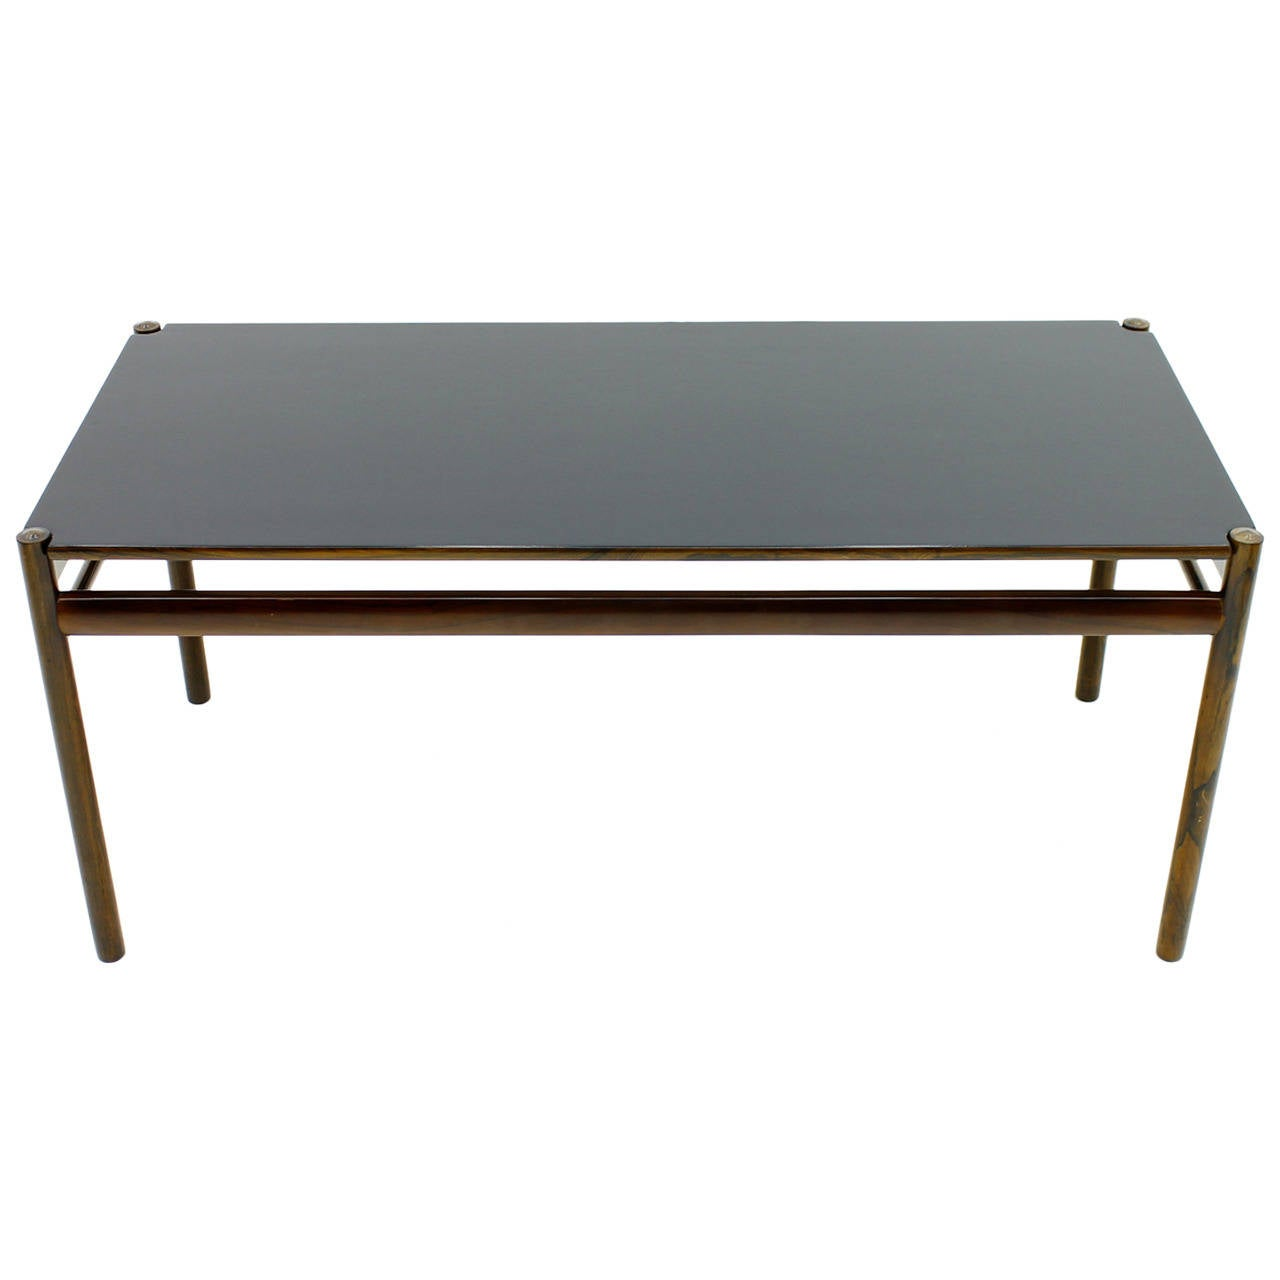 Flip Top Coffee Table By Ole Wanscher For Jeppesen Denmark 1960 For Sale At 1stdibs